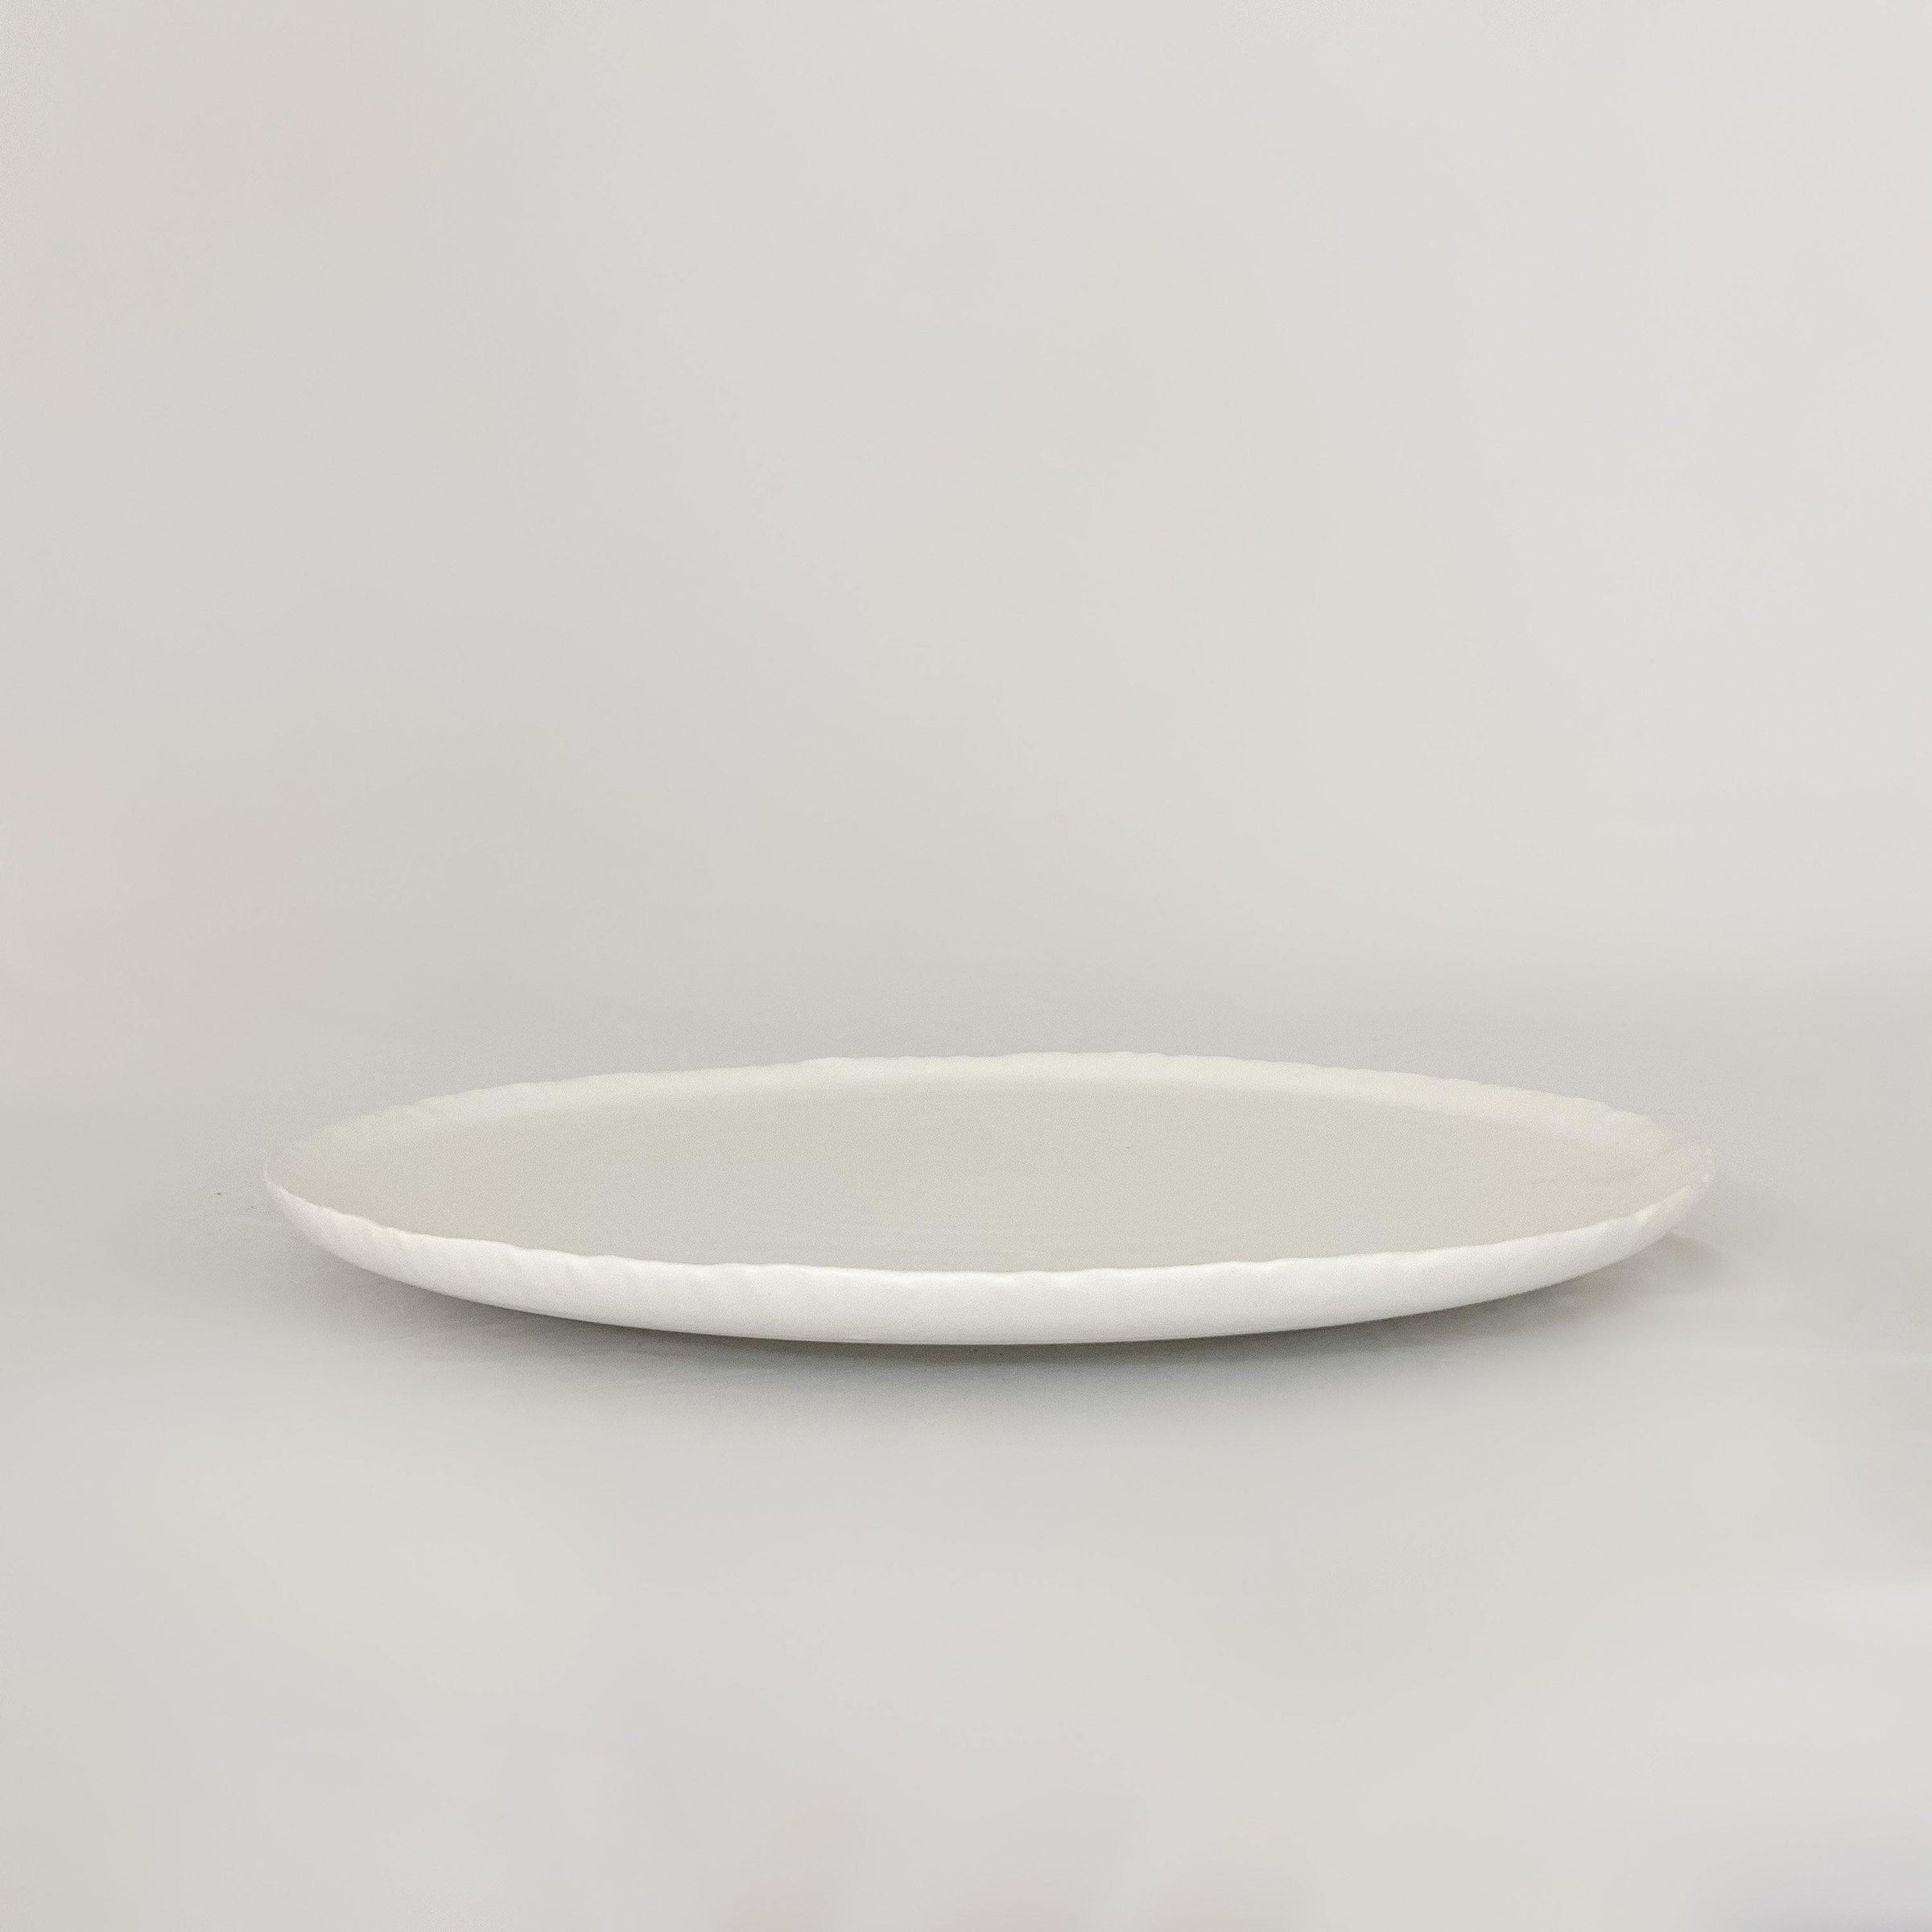 Matte White Platter with Deckled Edge - KM Home